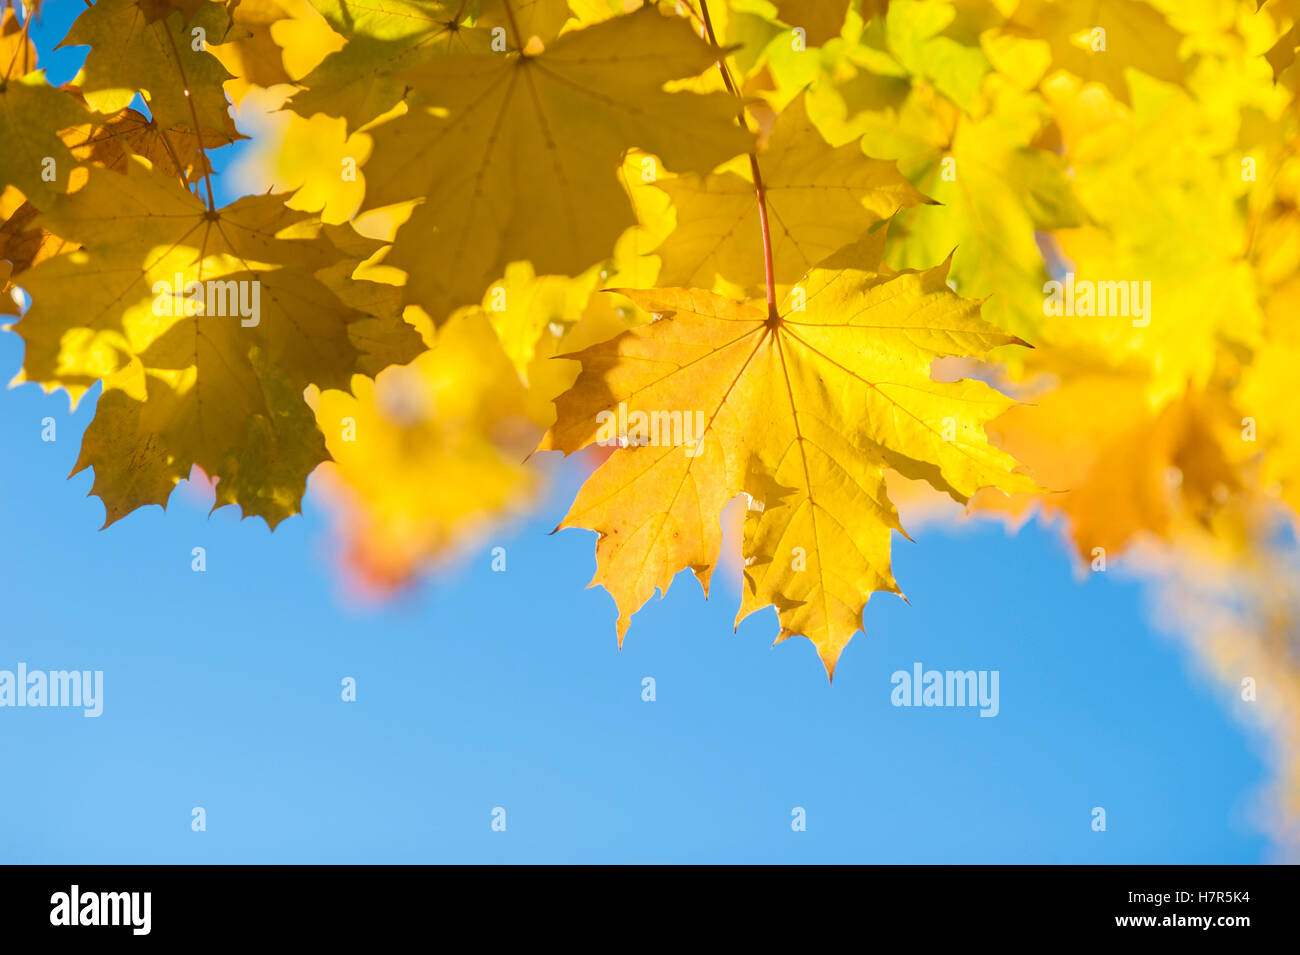 Bright and colourful Autumn leaves against a bright blue sky - Stock Image